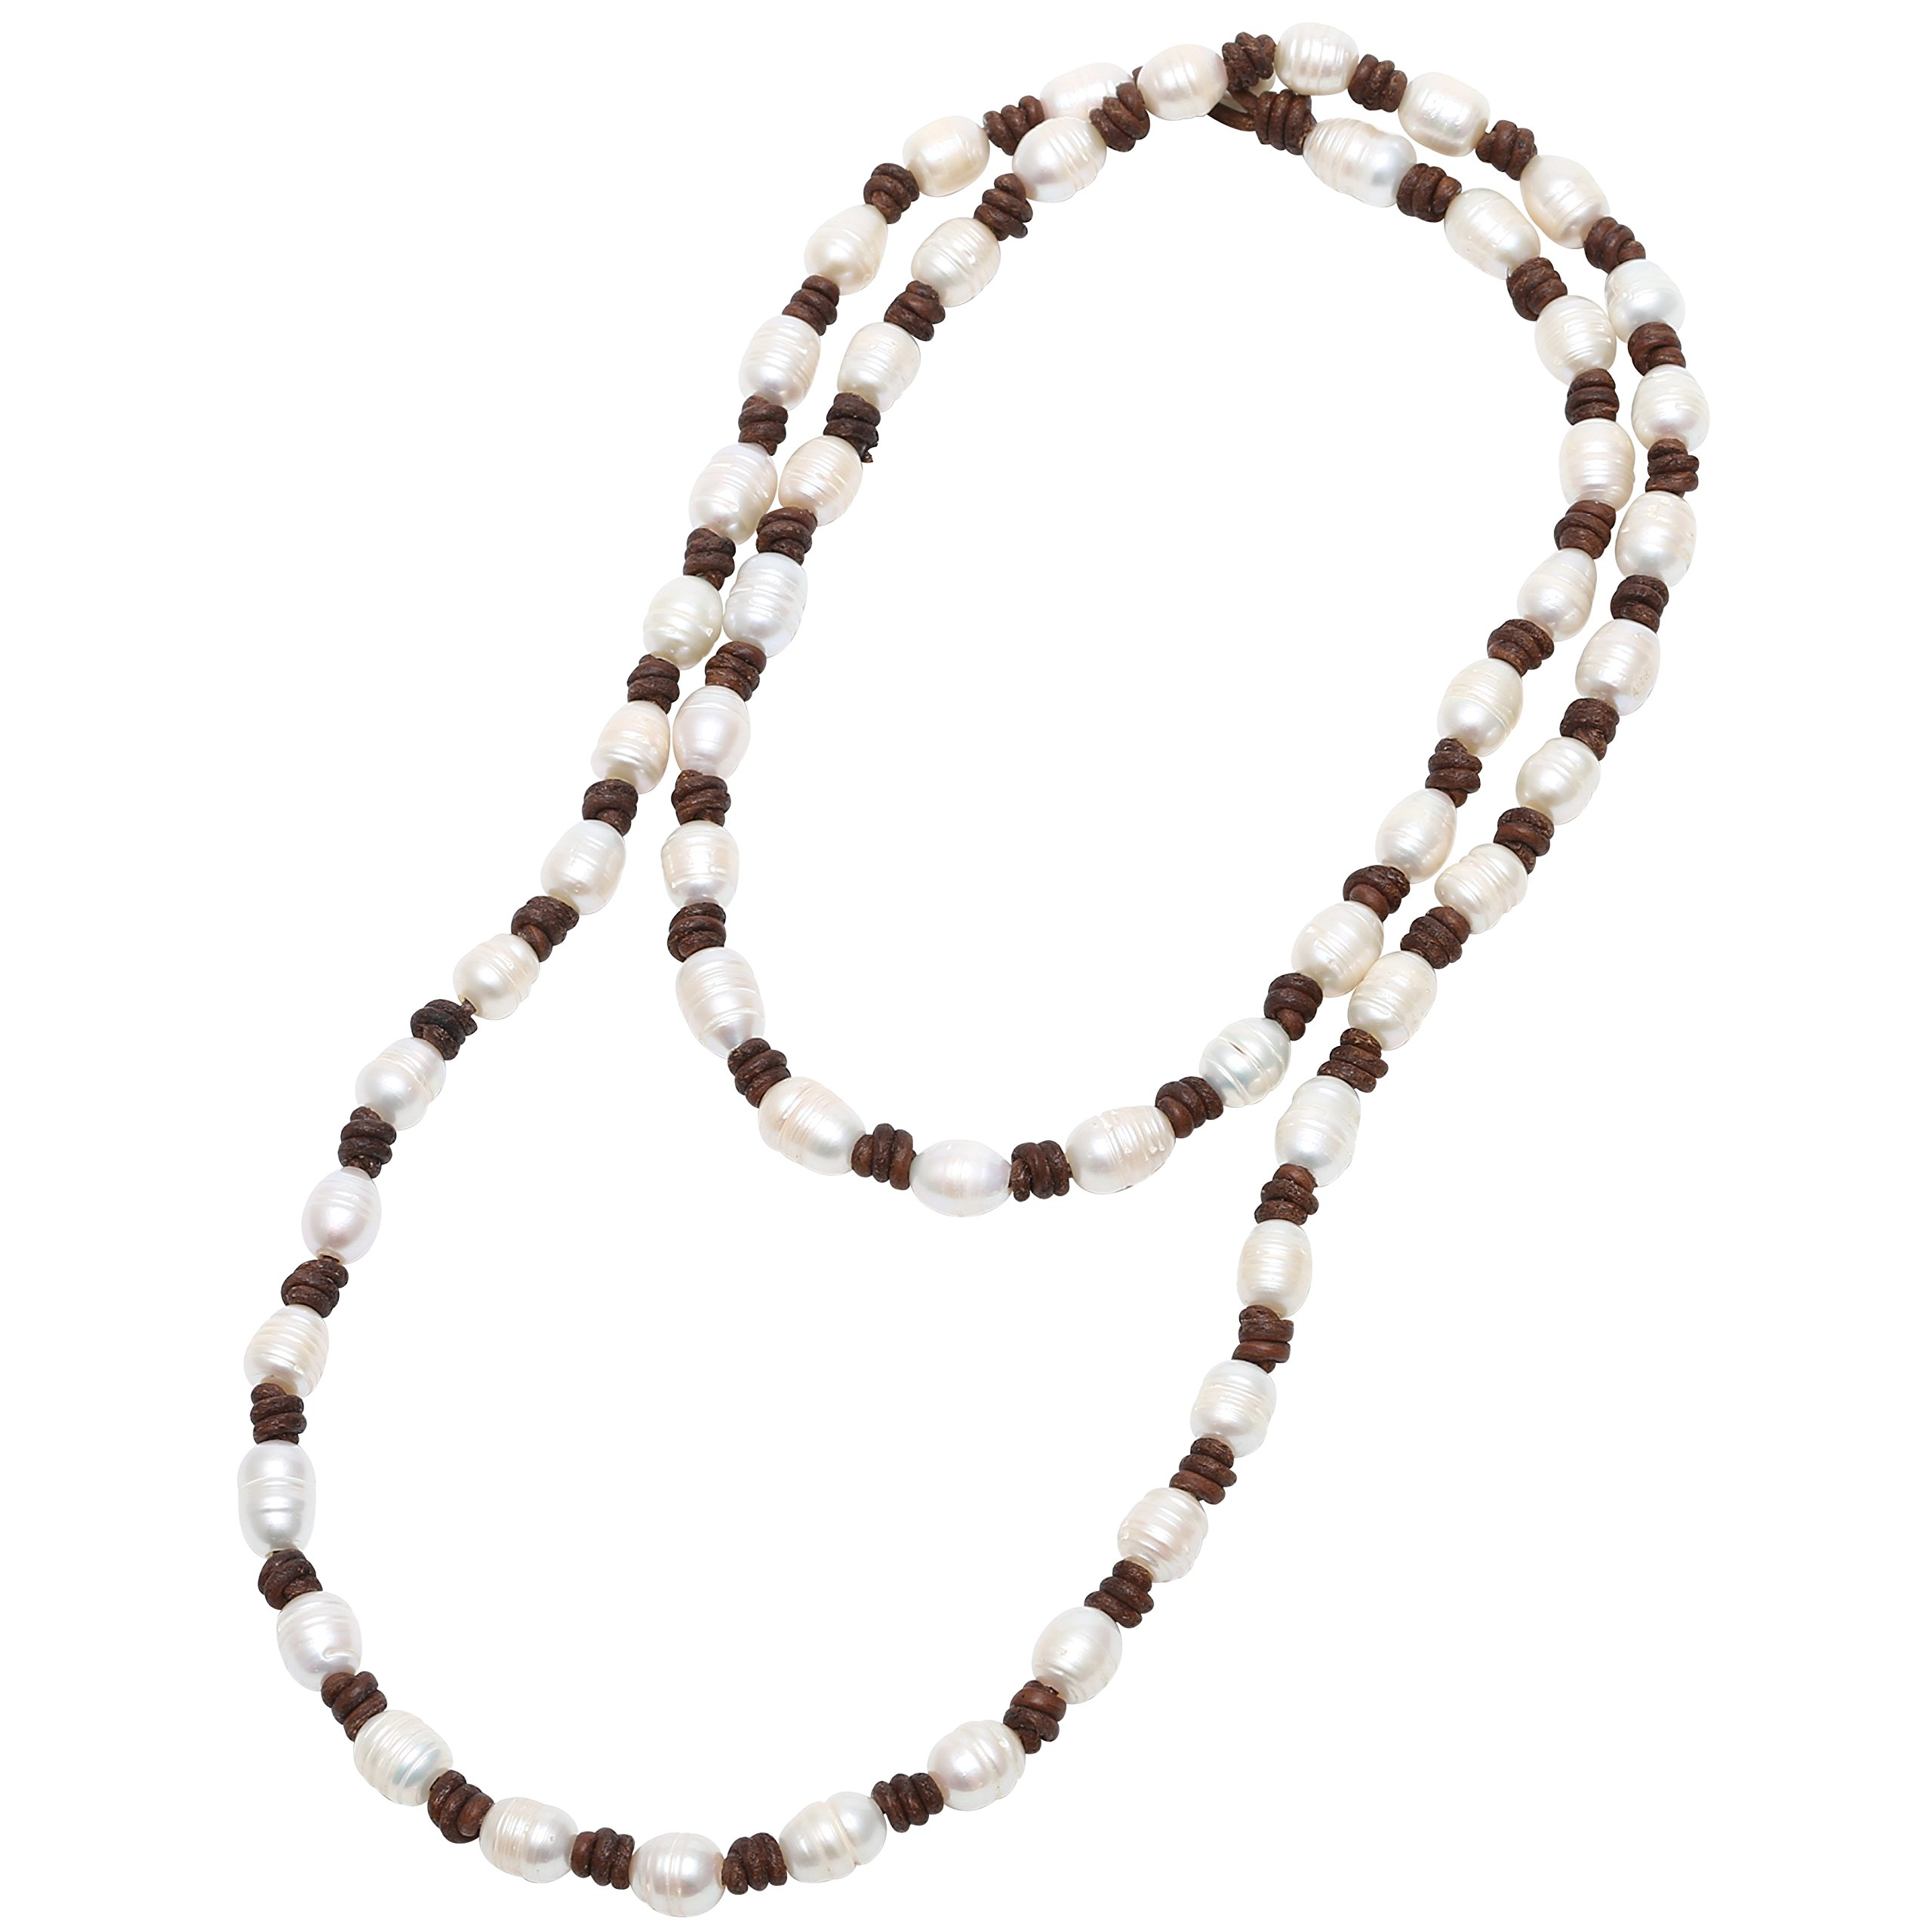 PERNNLA PEARL Cultured Freshwater Pearl Beaded Strand Necklace Handmade Genuine Brown Leather Layer Necklace Costume Jewelry 39''